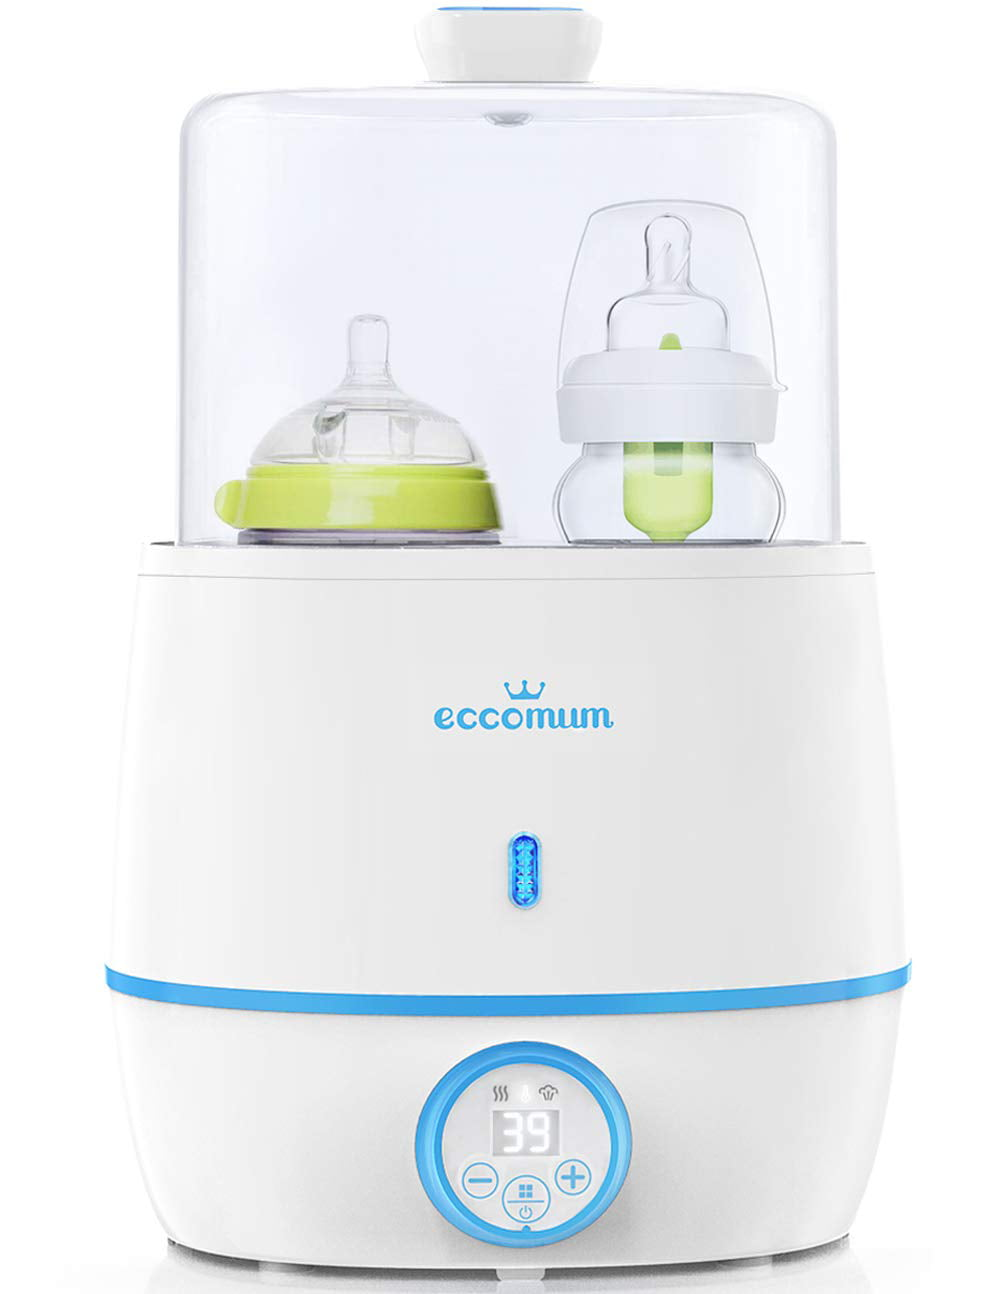 5-in-1 Bottle Steam Heater with Led Display Baby Bottle Warmer and Dryer Baby Milk Warmer for Baby Bottles Pacifiers Breast Pumps Auto Power-Off